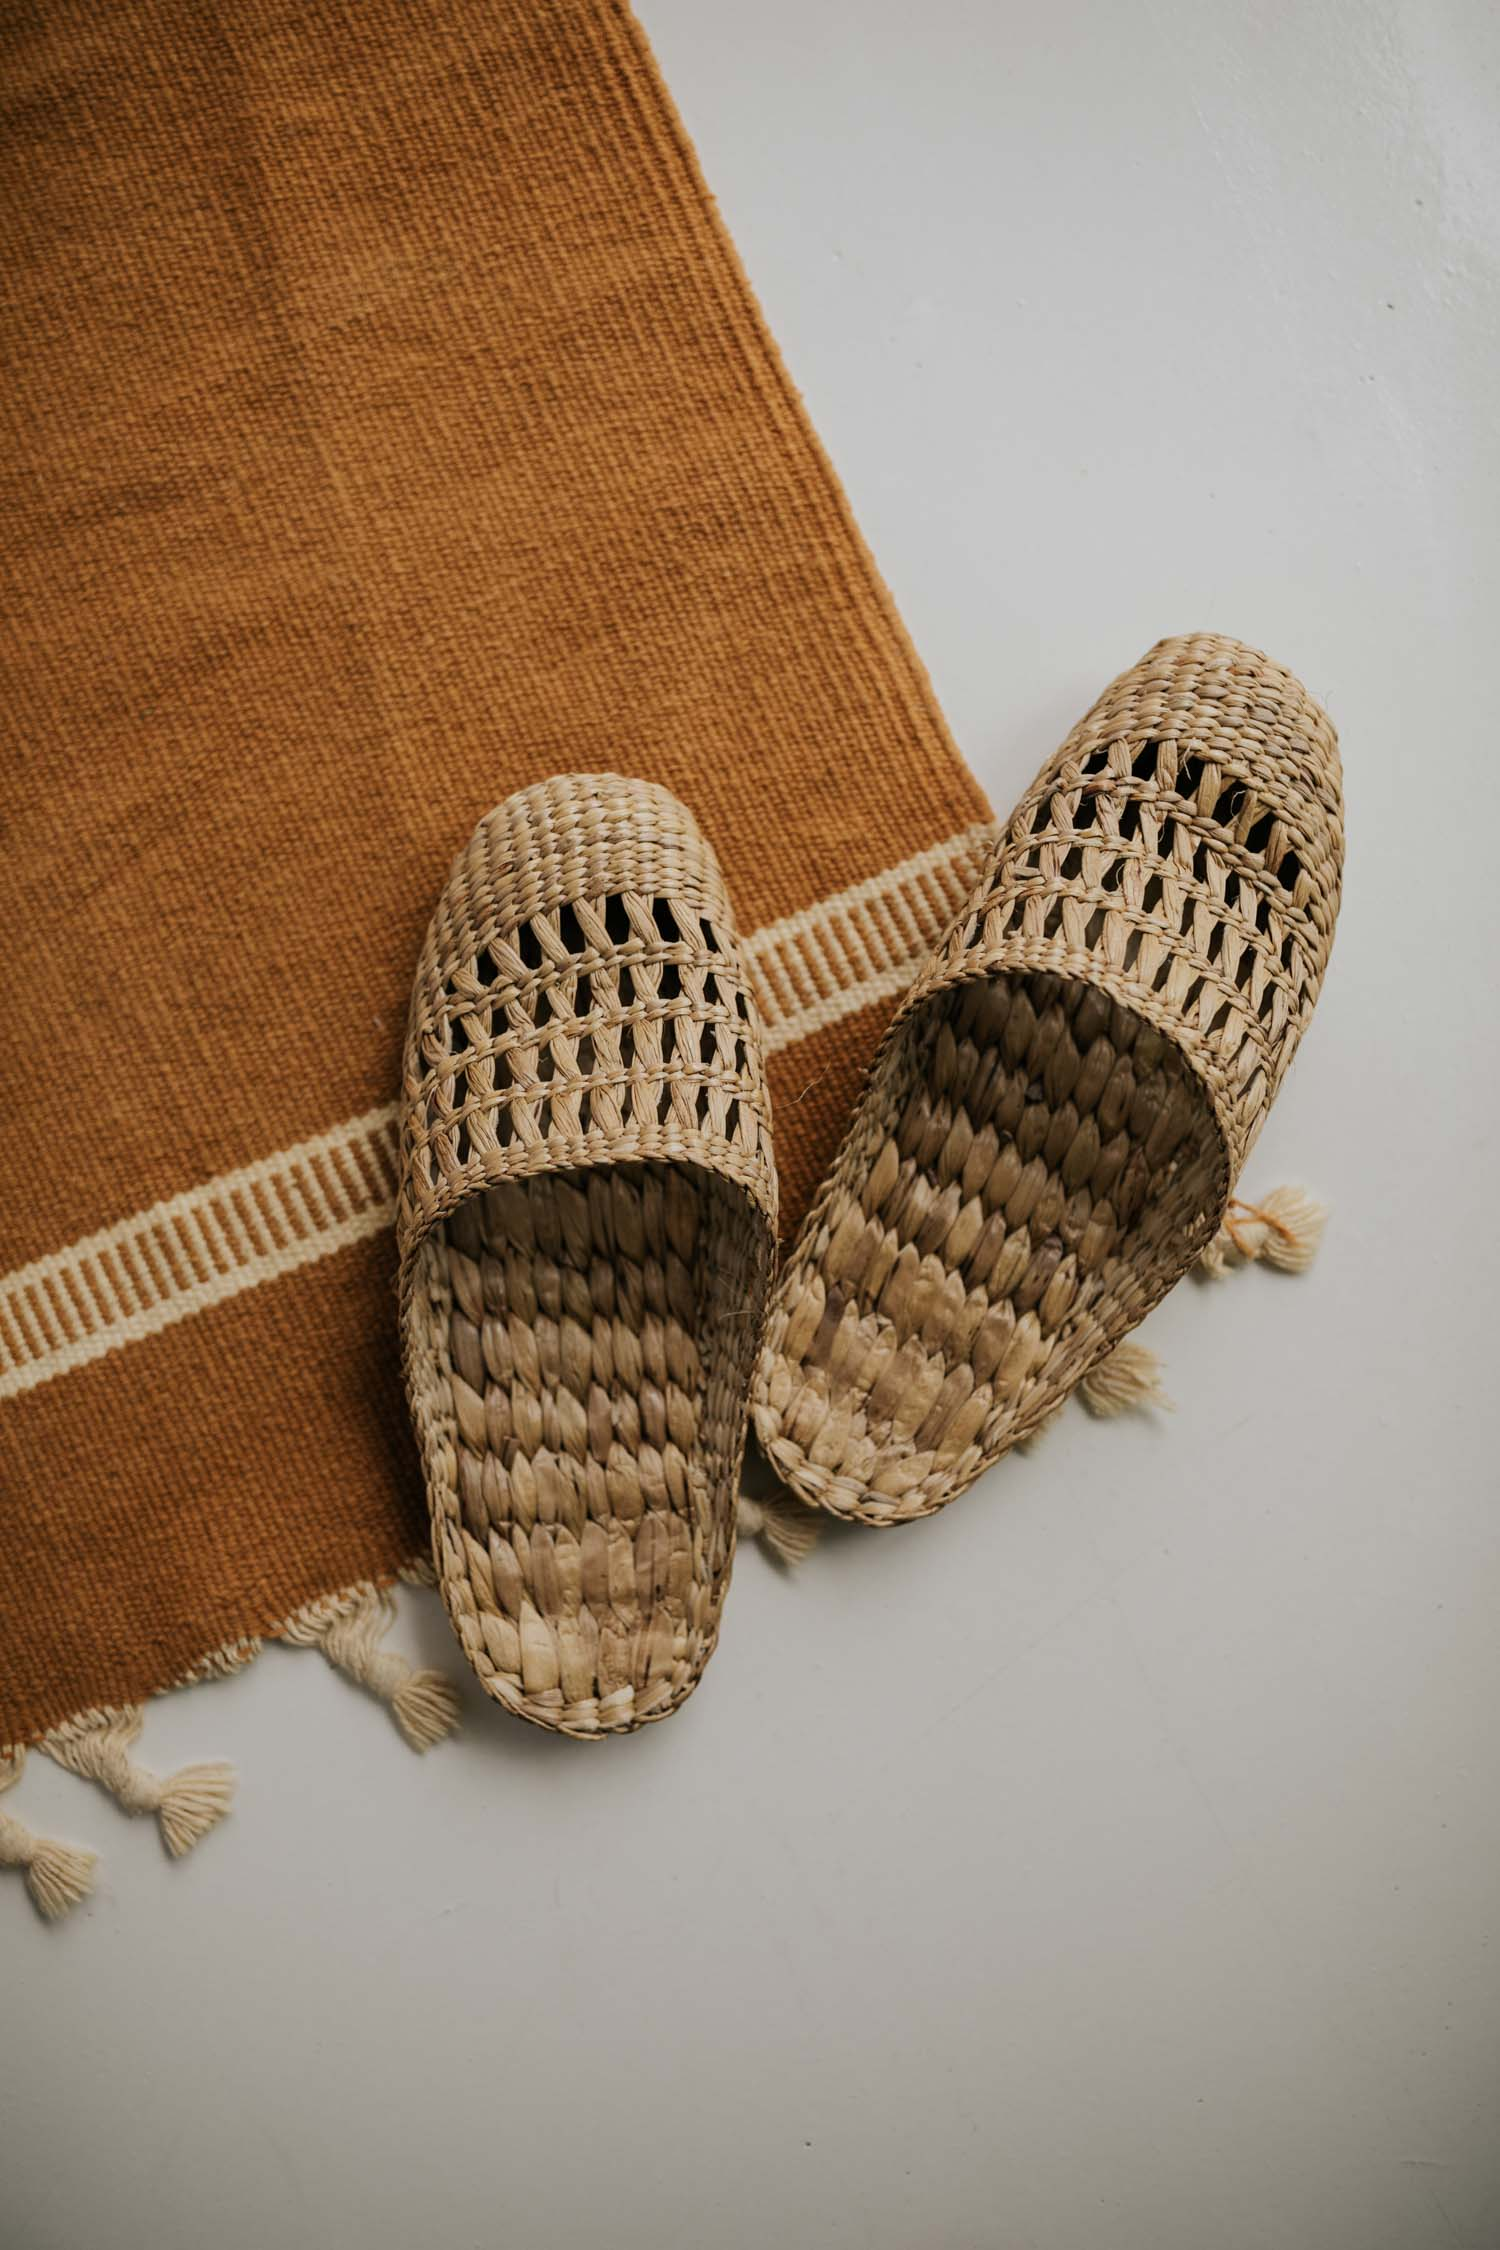 Woven grass boho slippers from Bali